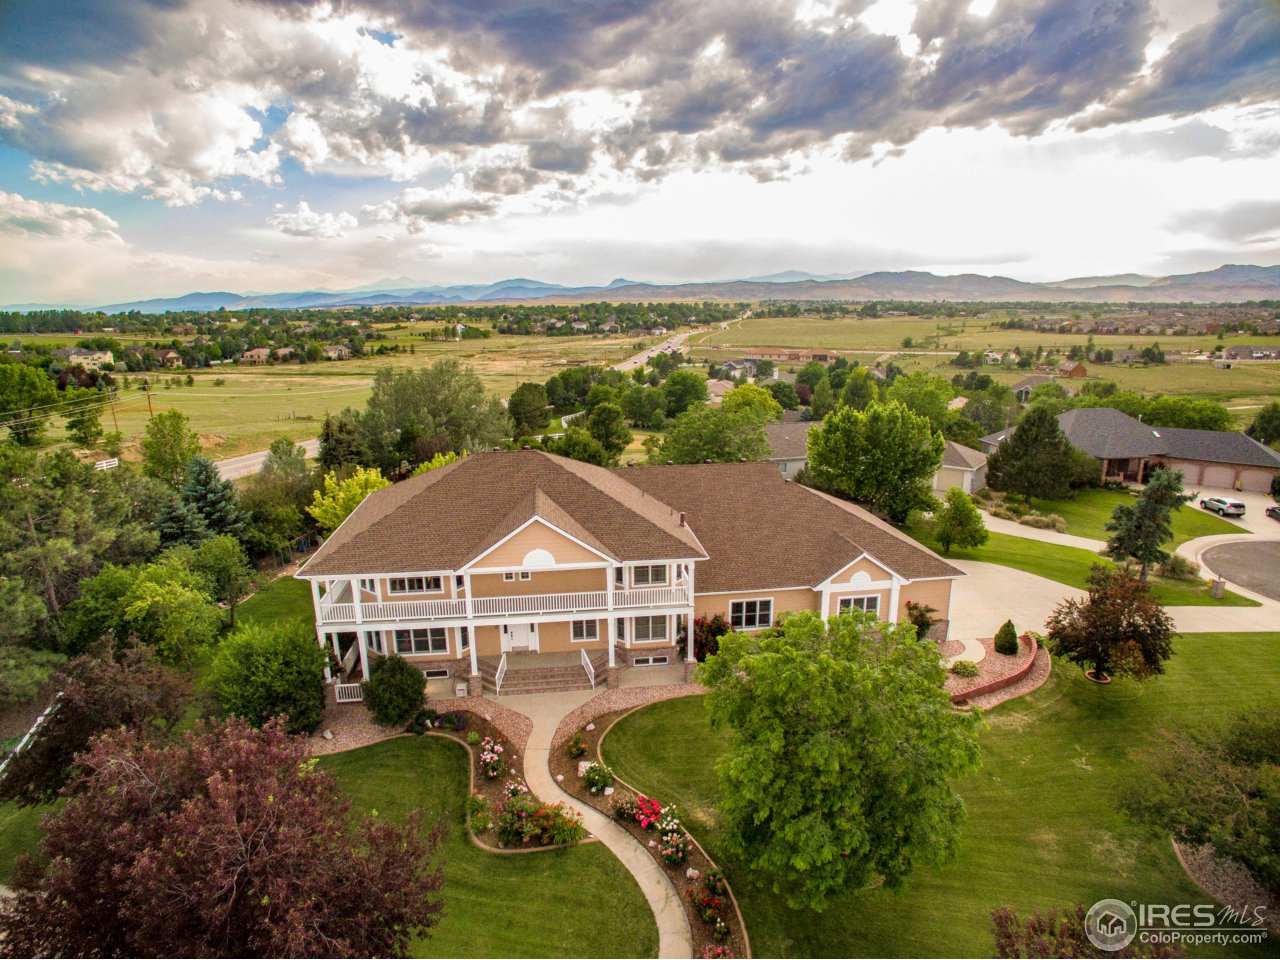 7507 Greenstone Trl, Fort Collins, CO 80525